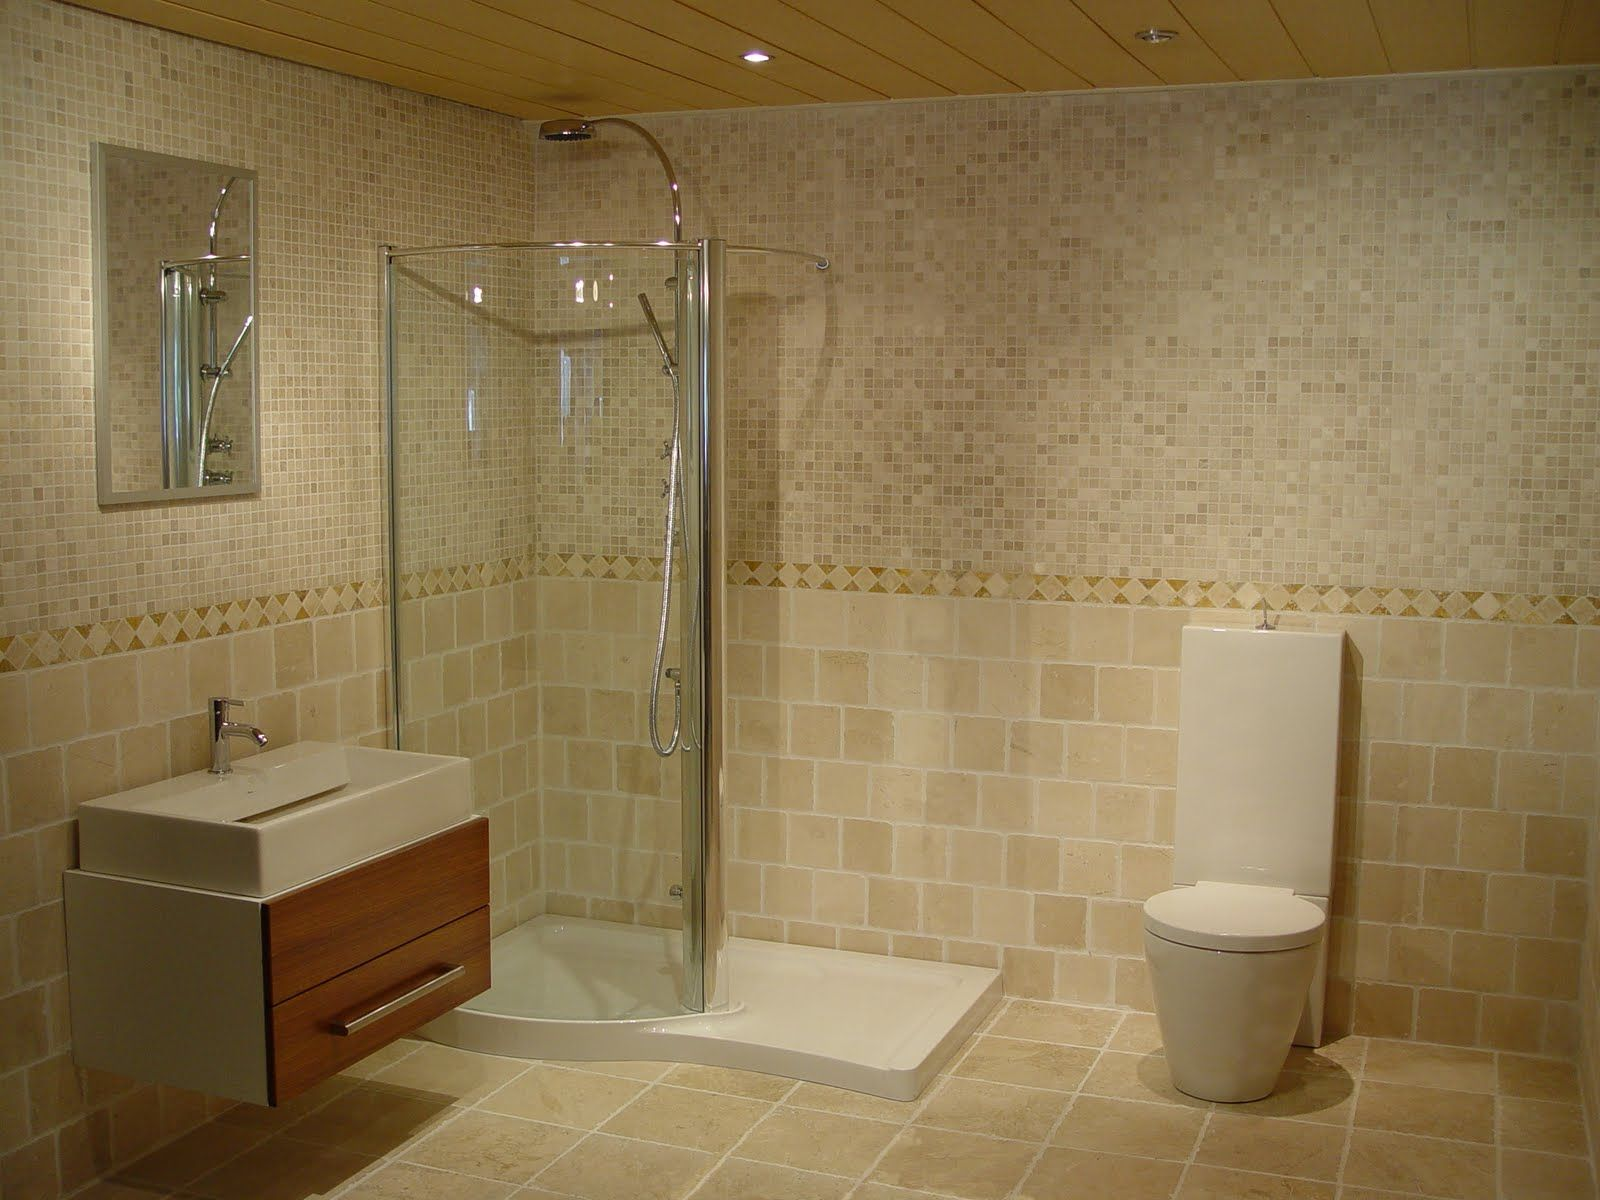 Bathroom Tiles Design Photos tile wall images | bedroom and living room image collections